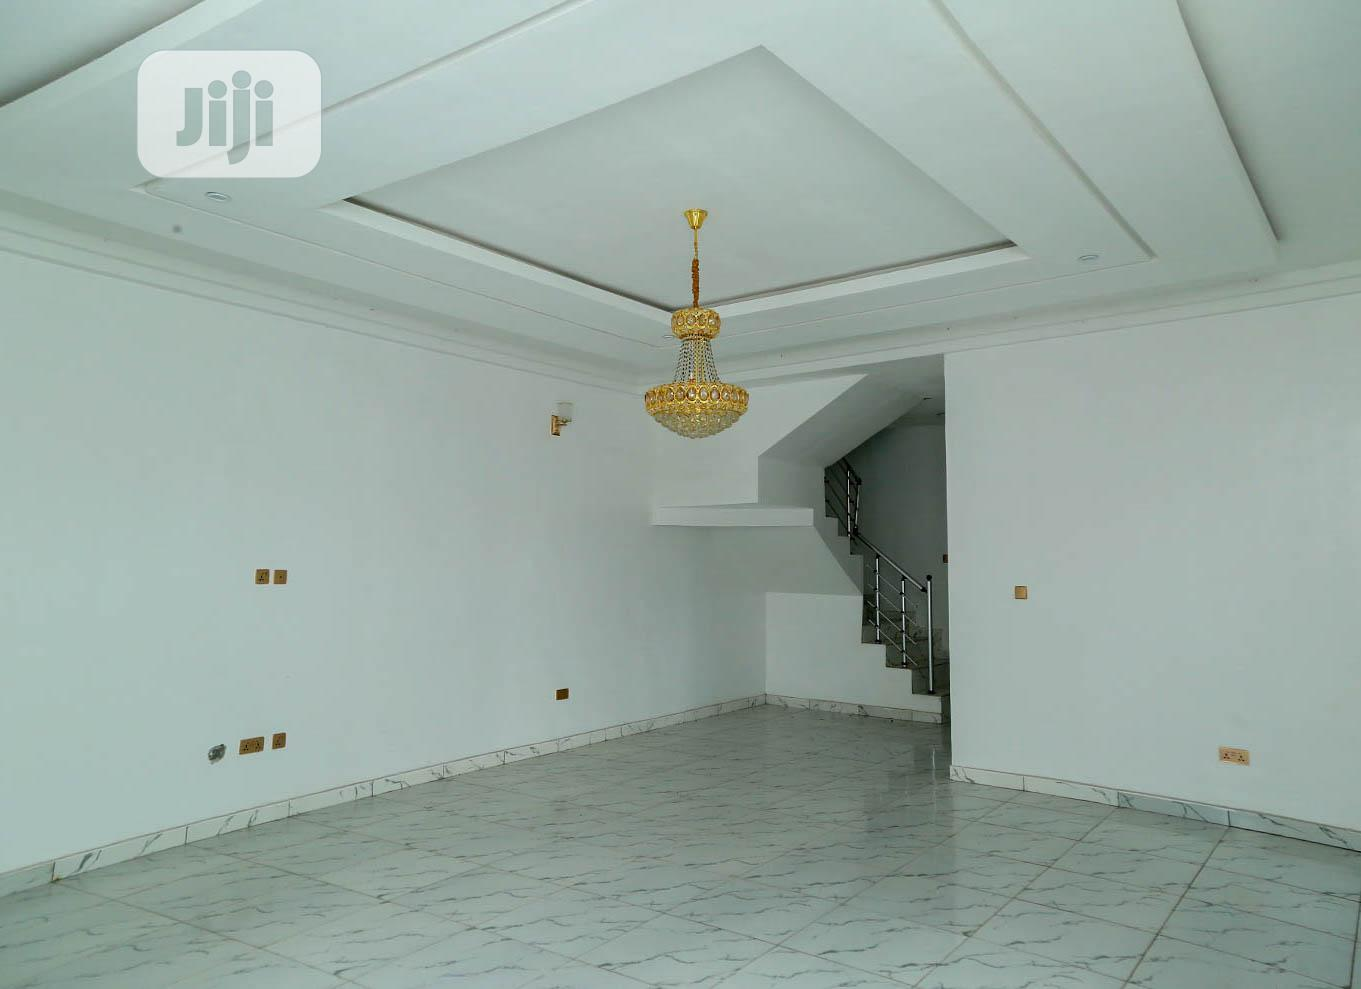 4 Bedroom Semi Detached Duplex With A Room BQ For Sale | Houses & Apartments For Sale for sale in Ikota, Lekki, Nigeria